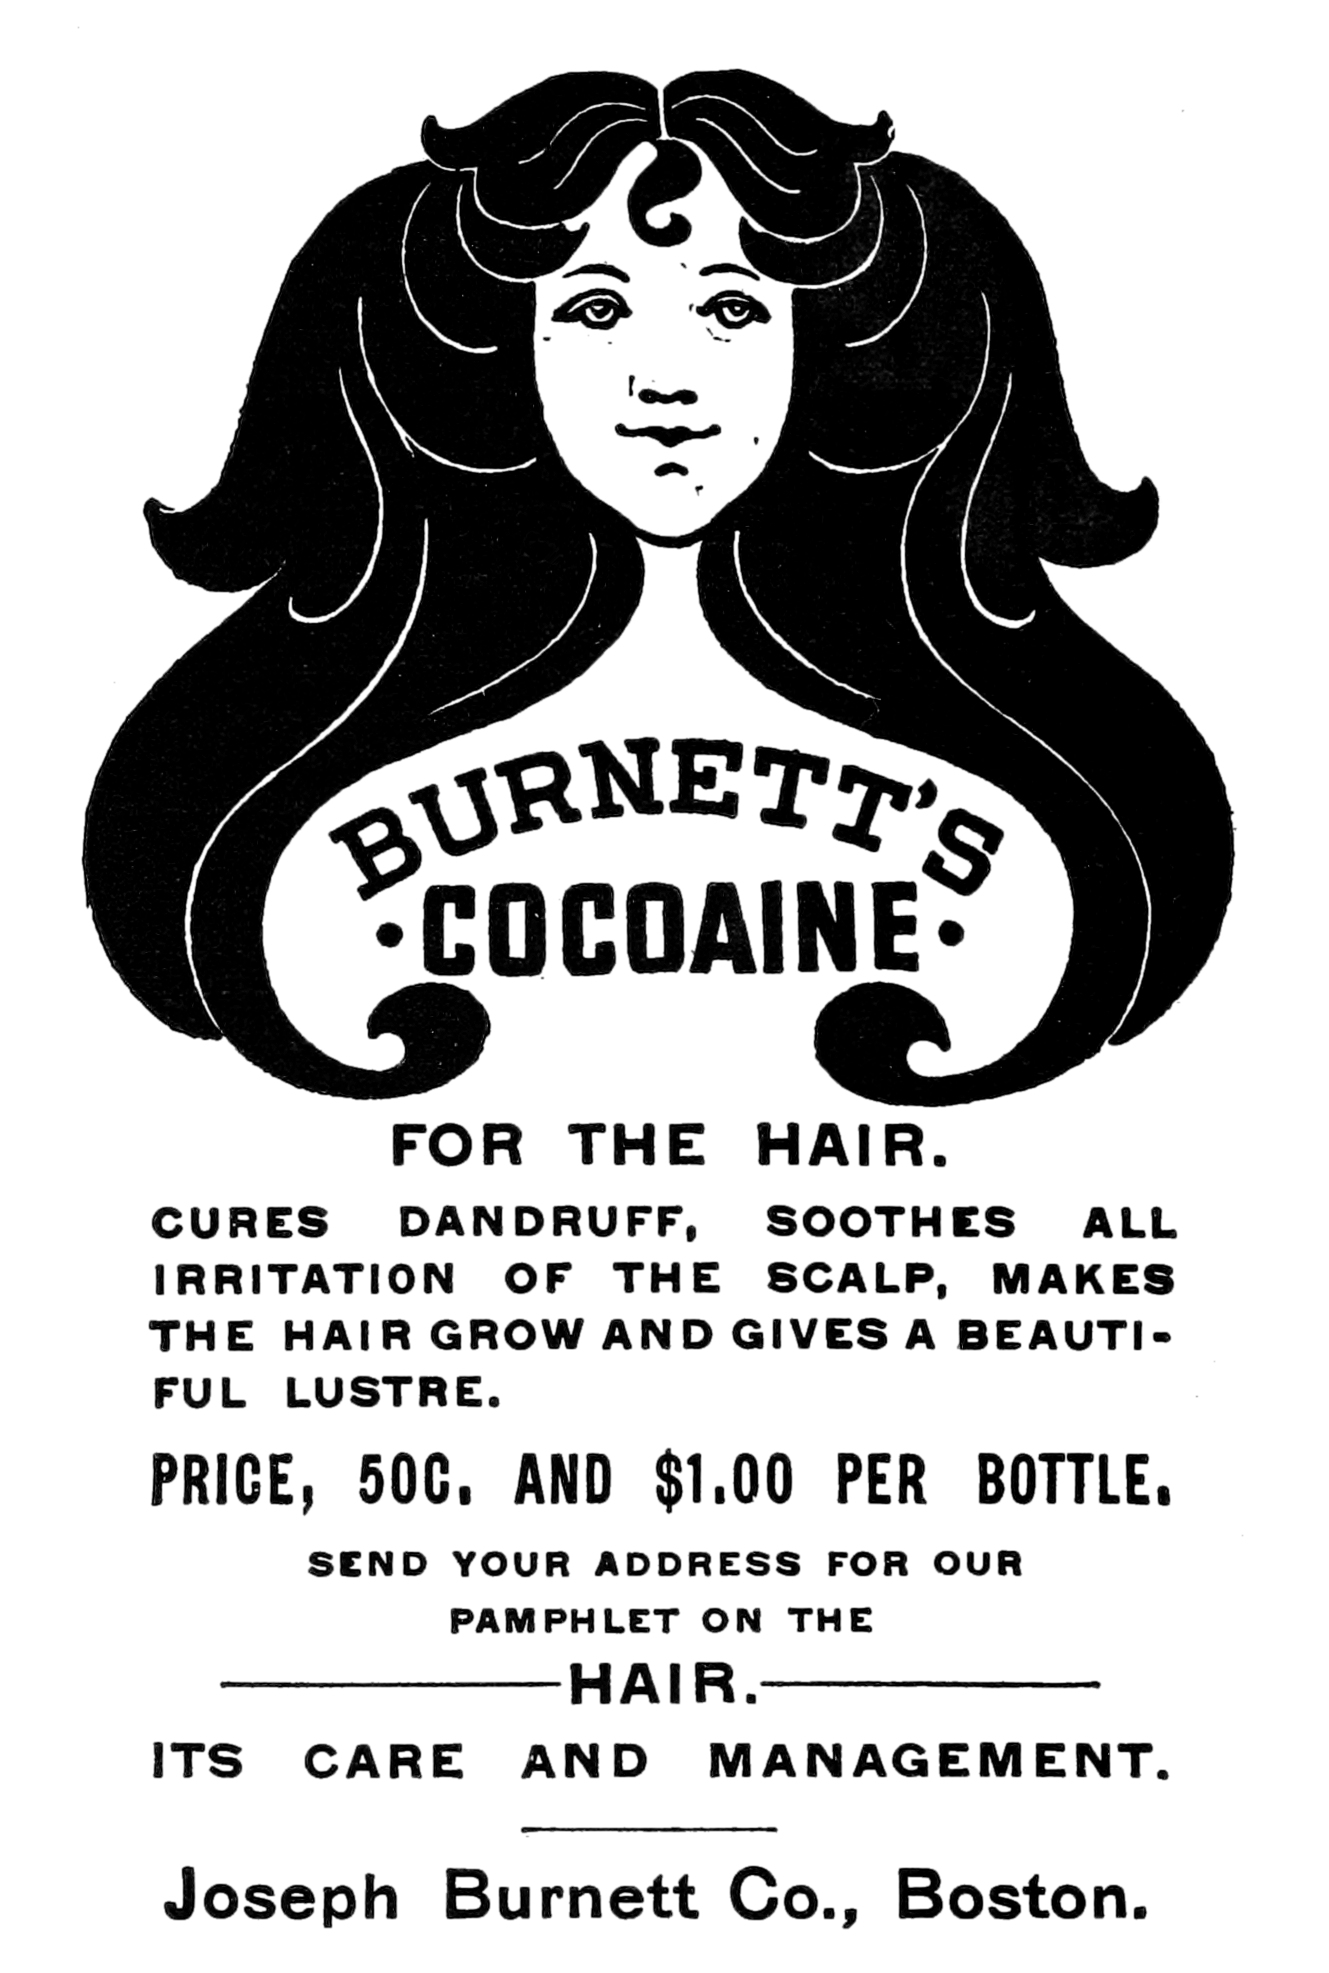 A 19th century advertisement for medicinal cocaine